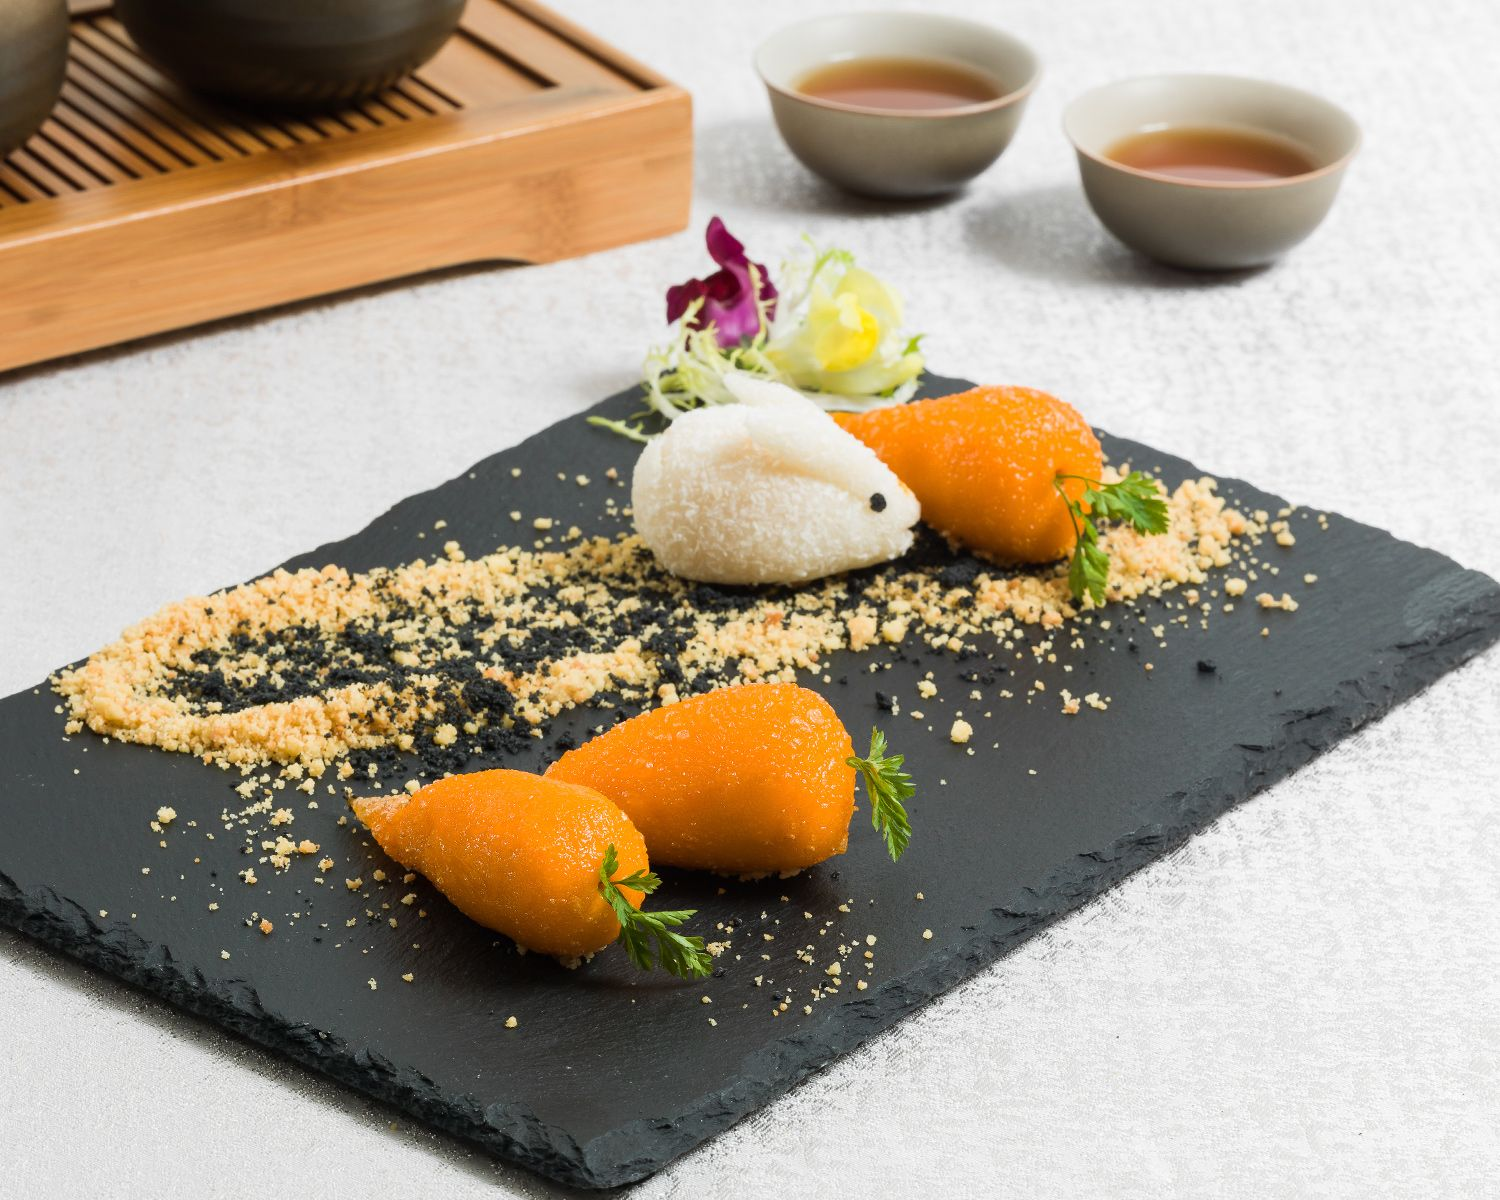 Lotus Palace's crispy glutinous rice dumpling with goose liver and dried scallop